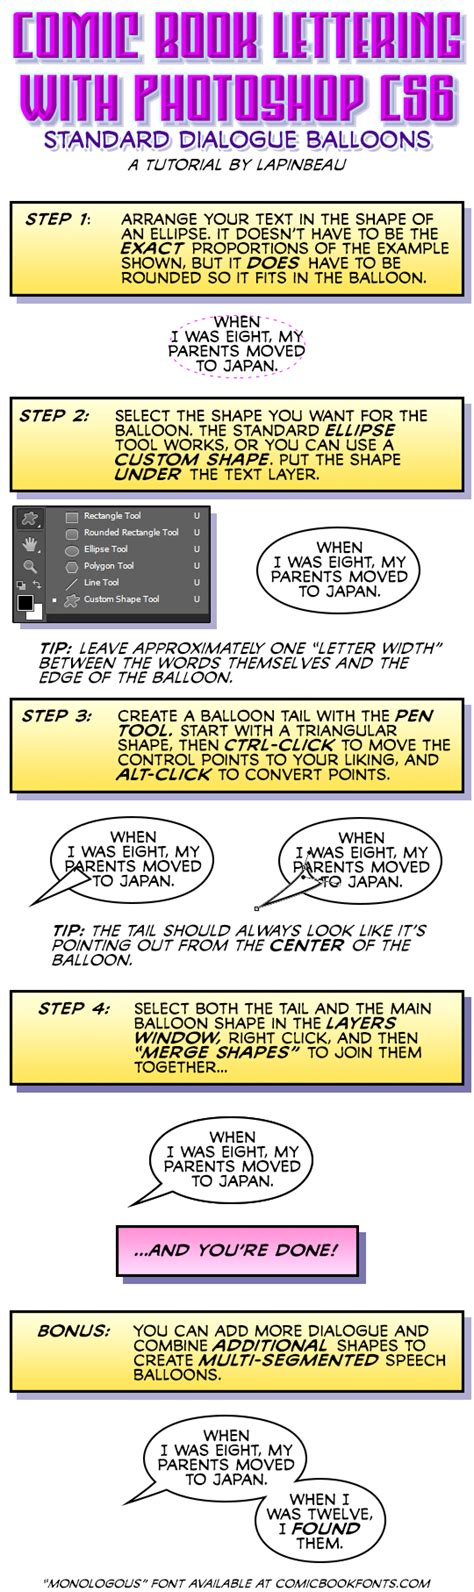 lettering comics tutorial photoshop cs6 comic book lettering tutorial by lapinbeau